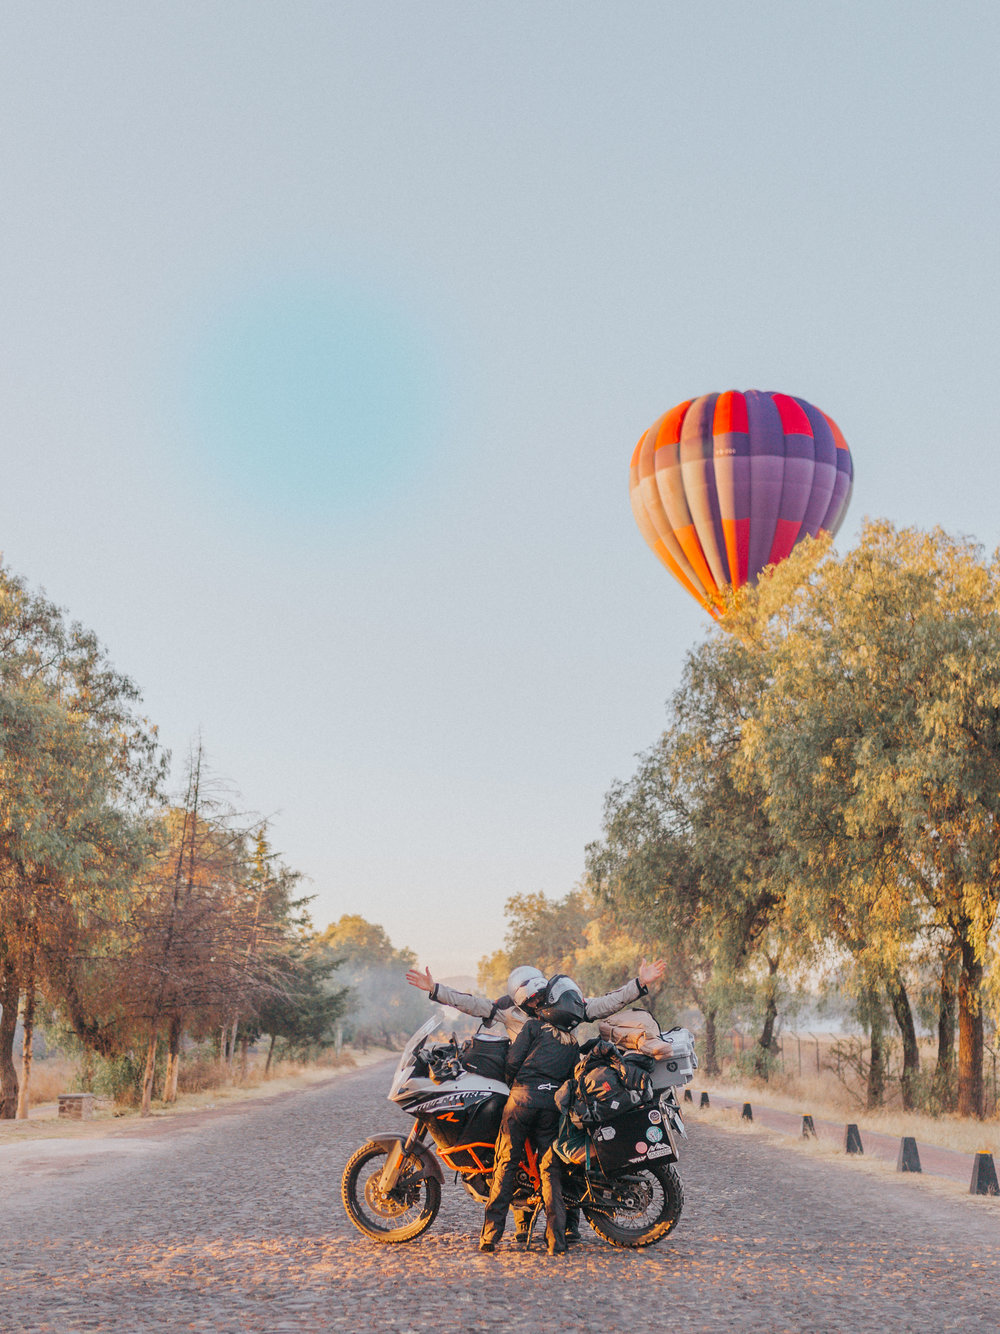 Giant hot air balloons in Teotehuacan!